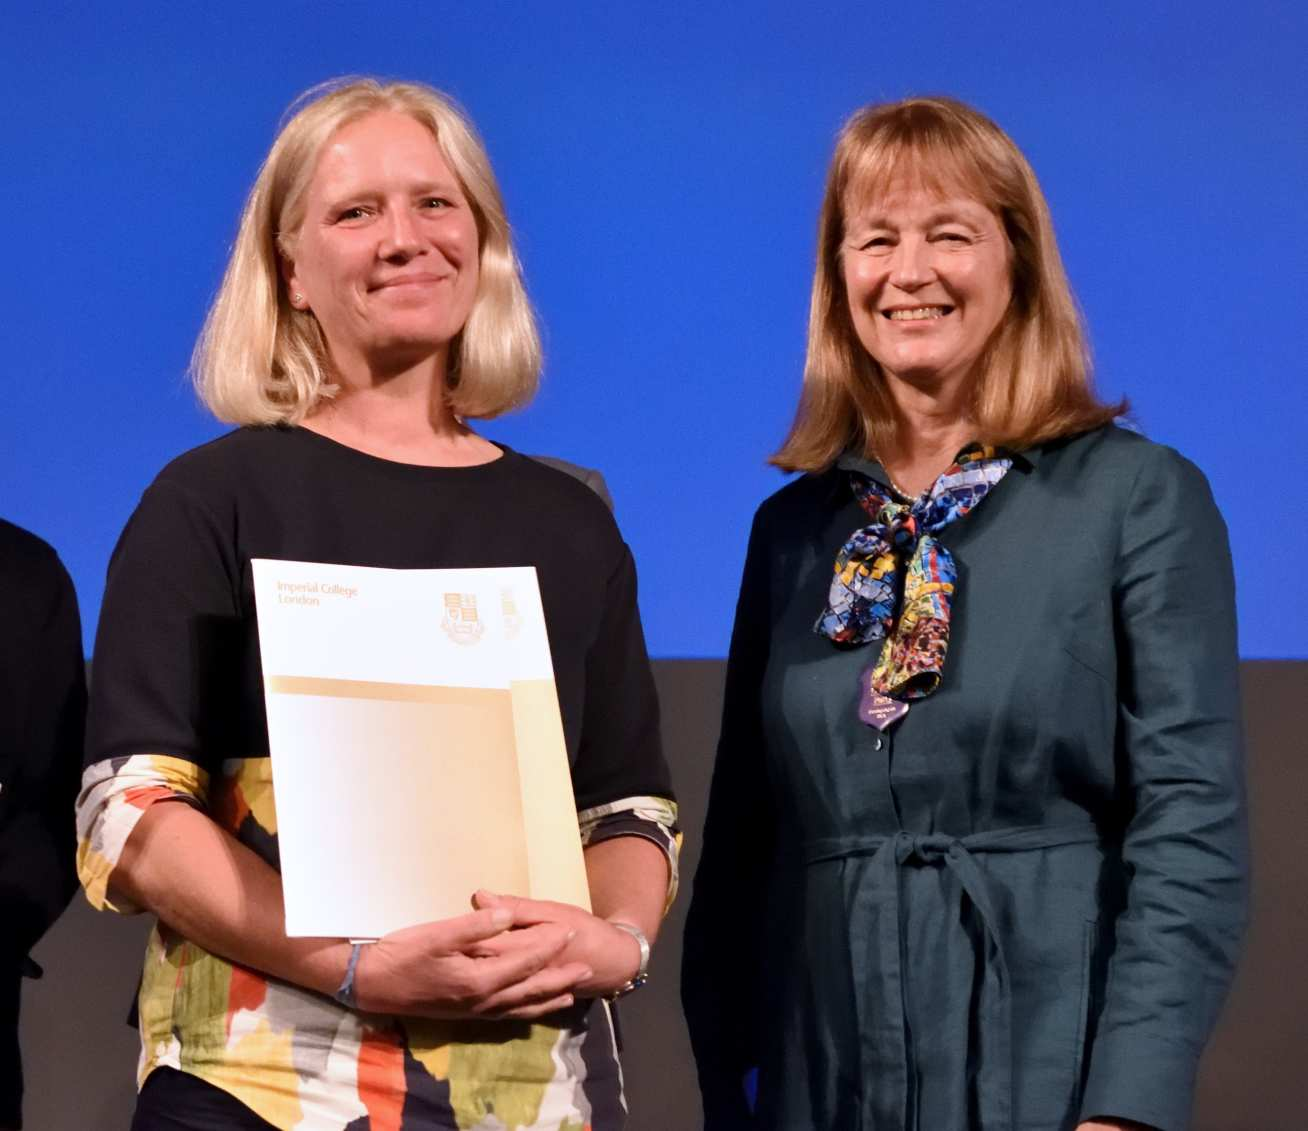 women holding certificate in hand smiling